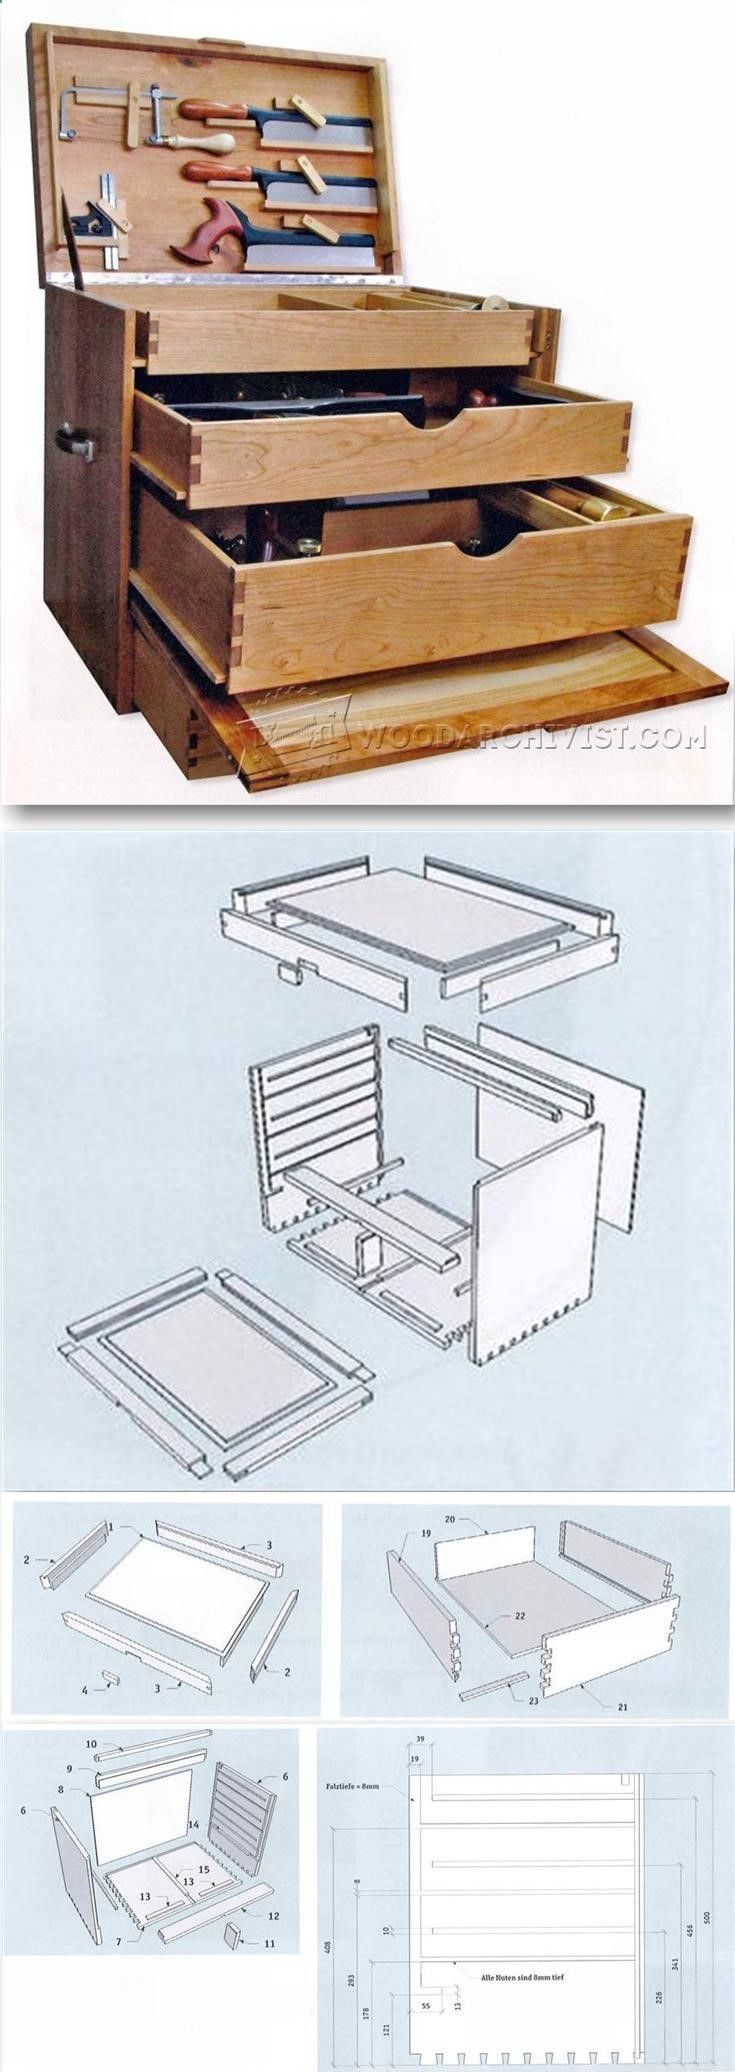 old kitchen cabinets best 25 free woodworking plans ideas on 24004